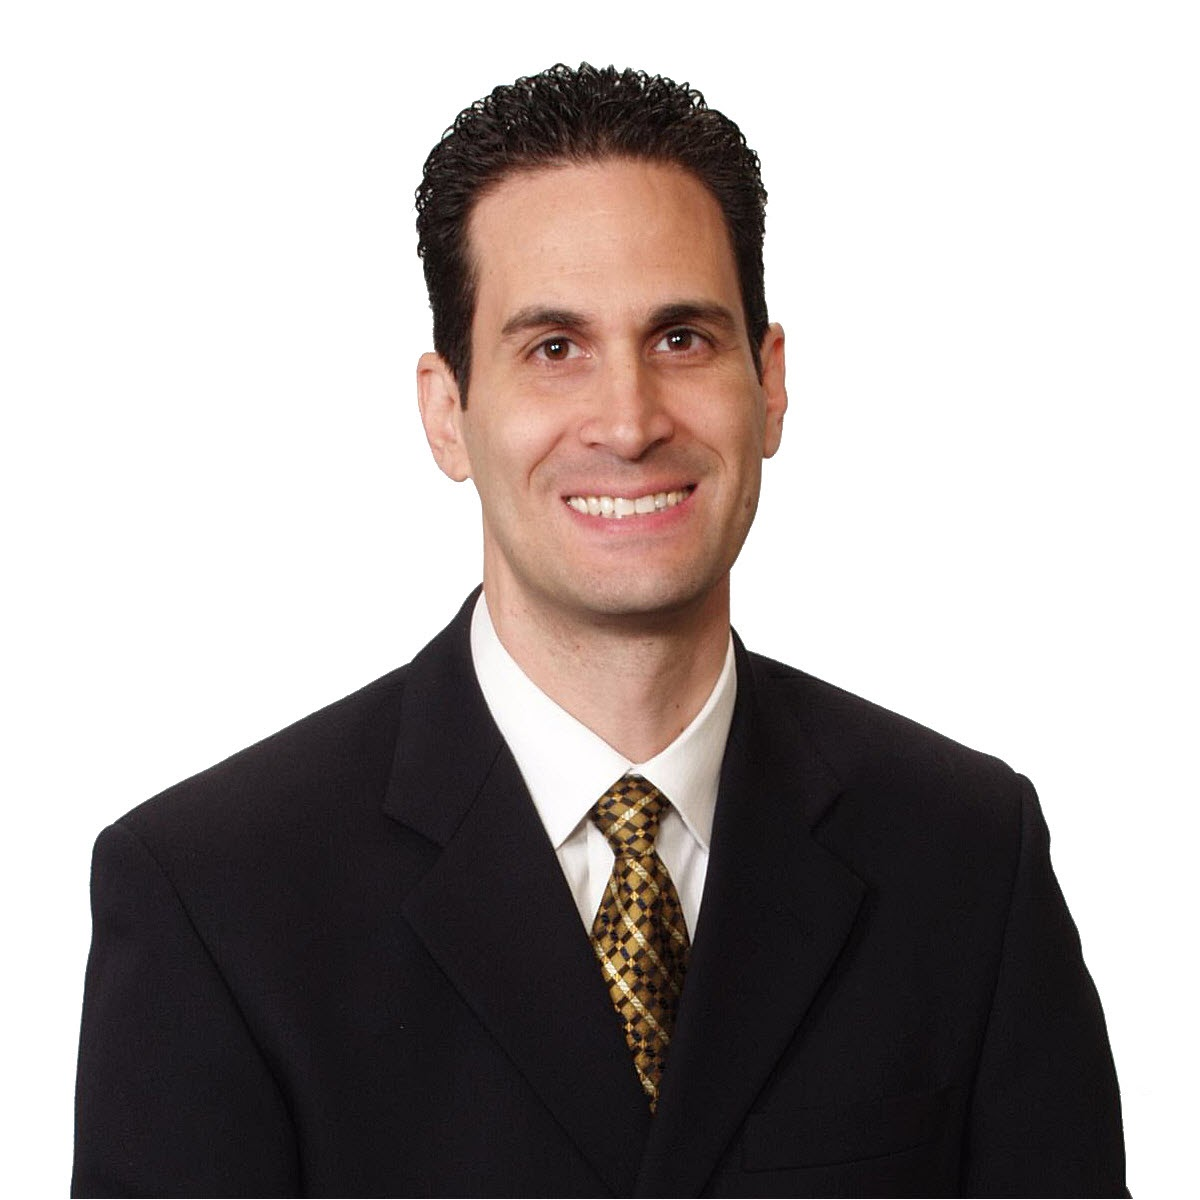 The Inventor of Turnkey Real Estate: Marco Santarelli of Norada Real Estate Investments